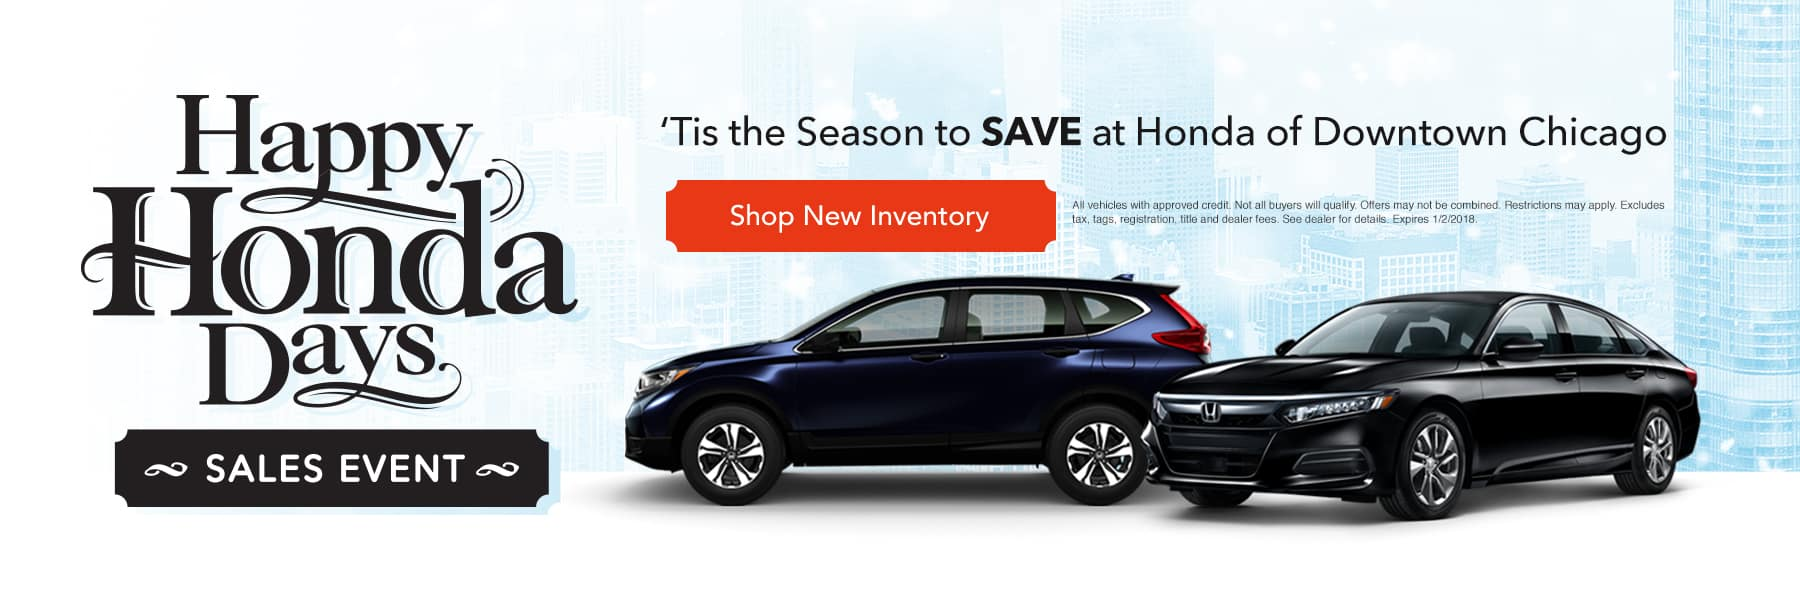 Tis the season to save at Honda of Downtown Chicago - Shop New Inventory